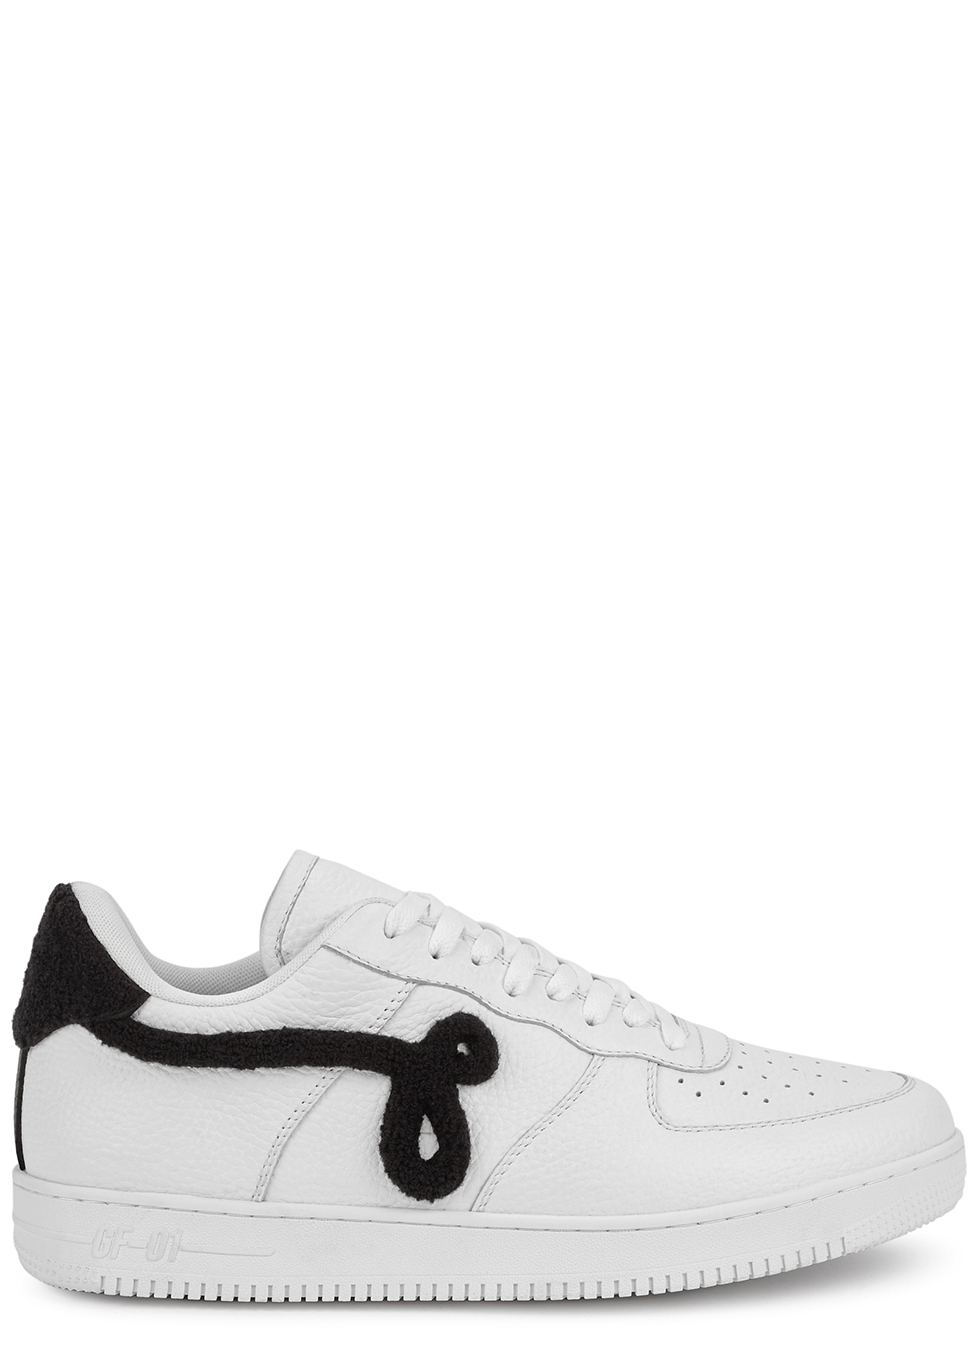 GF-01 white leather sneakers